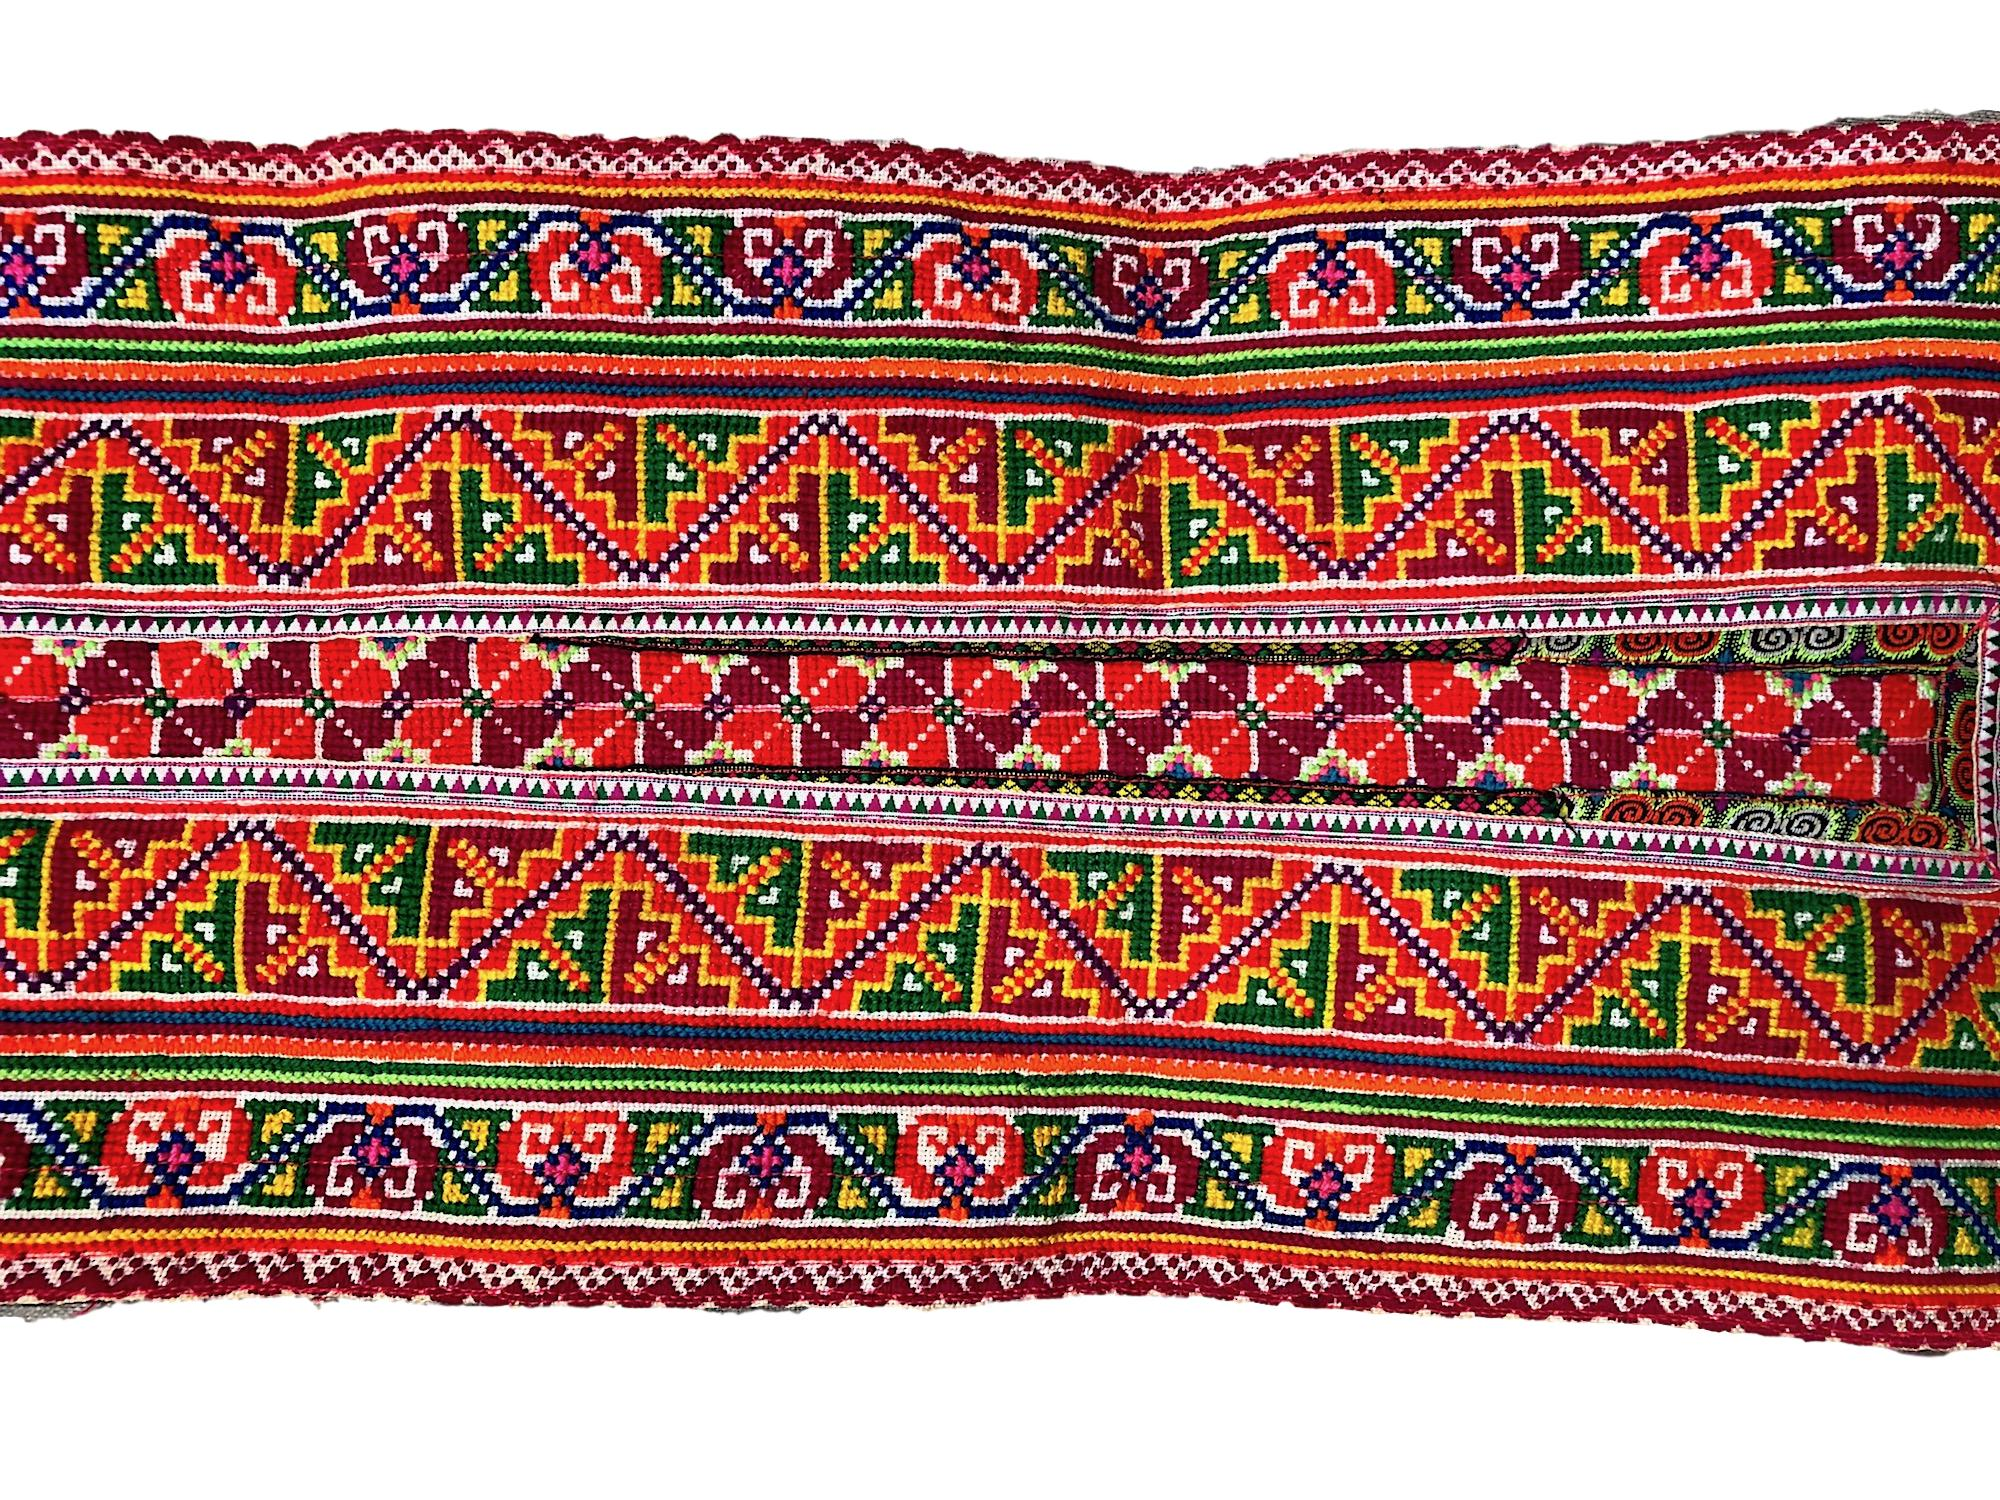 Flower Hmong Decor fabric - Artistic Cross Stitch Panel - Pallu Design